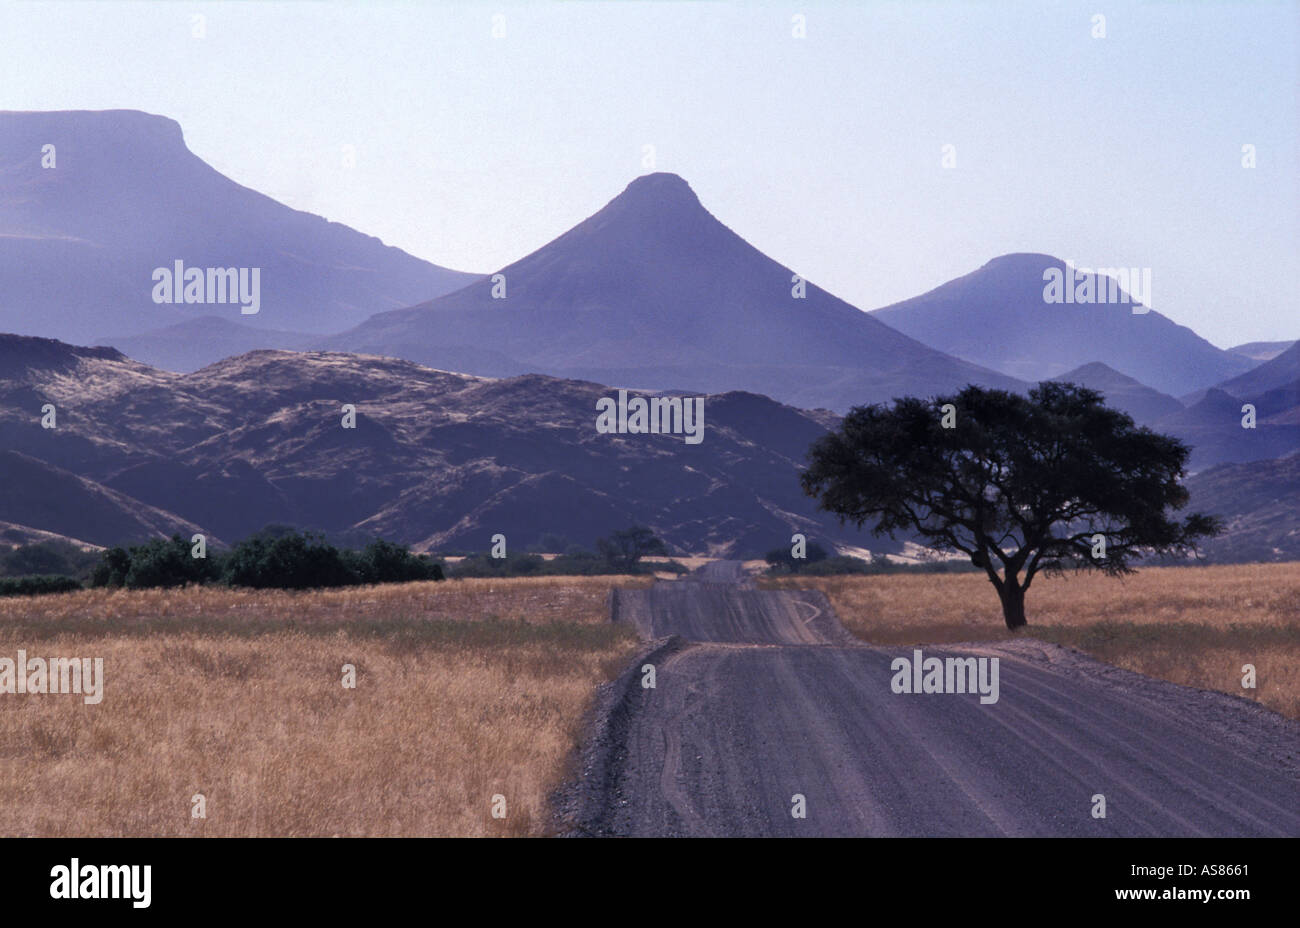 A prehistoric landscape gravel roads Palmwag to Sesfontein Extinct volcanoes tabletop mountains line the horizon Namibia - Stock Image